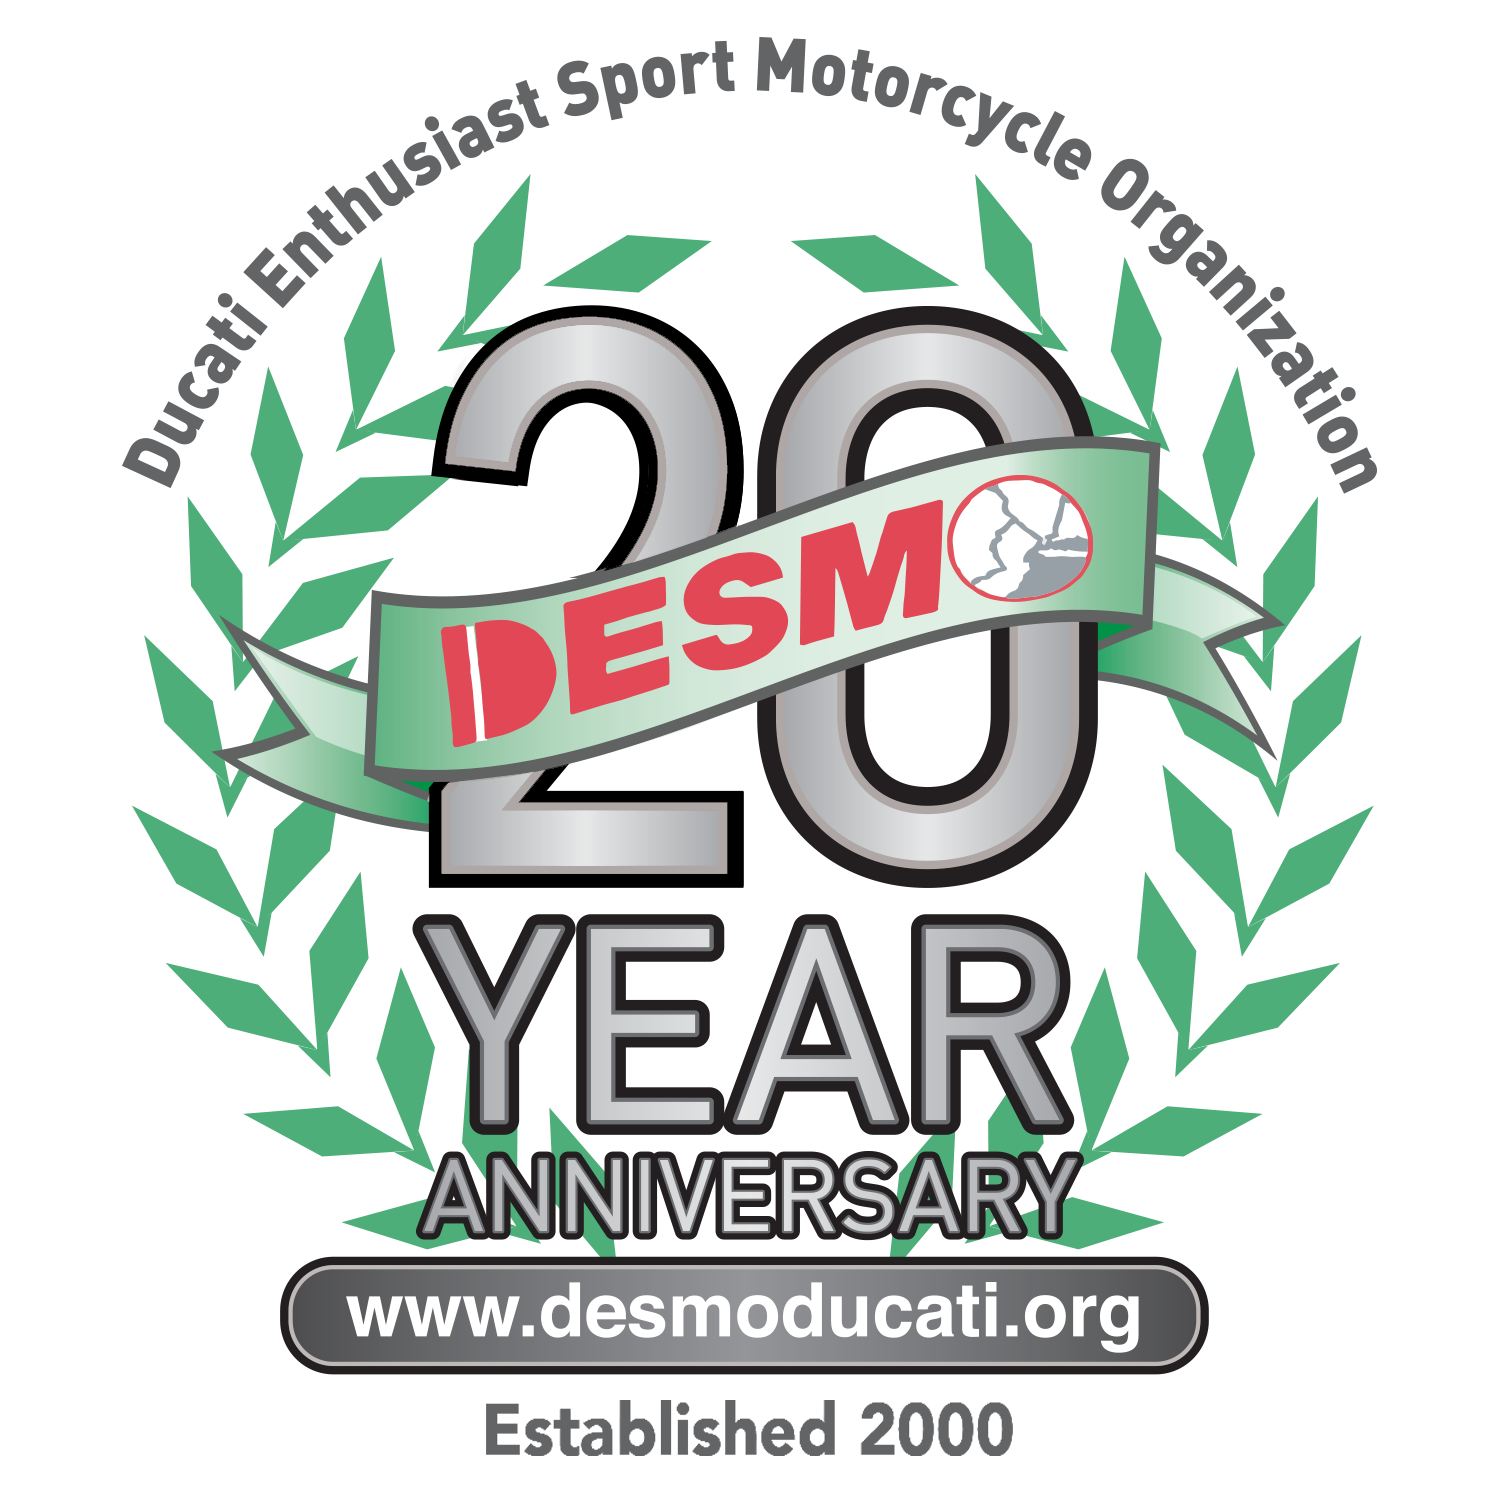 DESMO celebrated 15 years in 2015